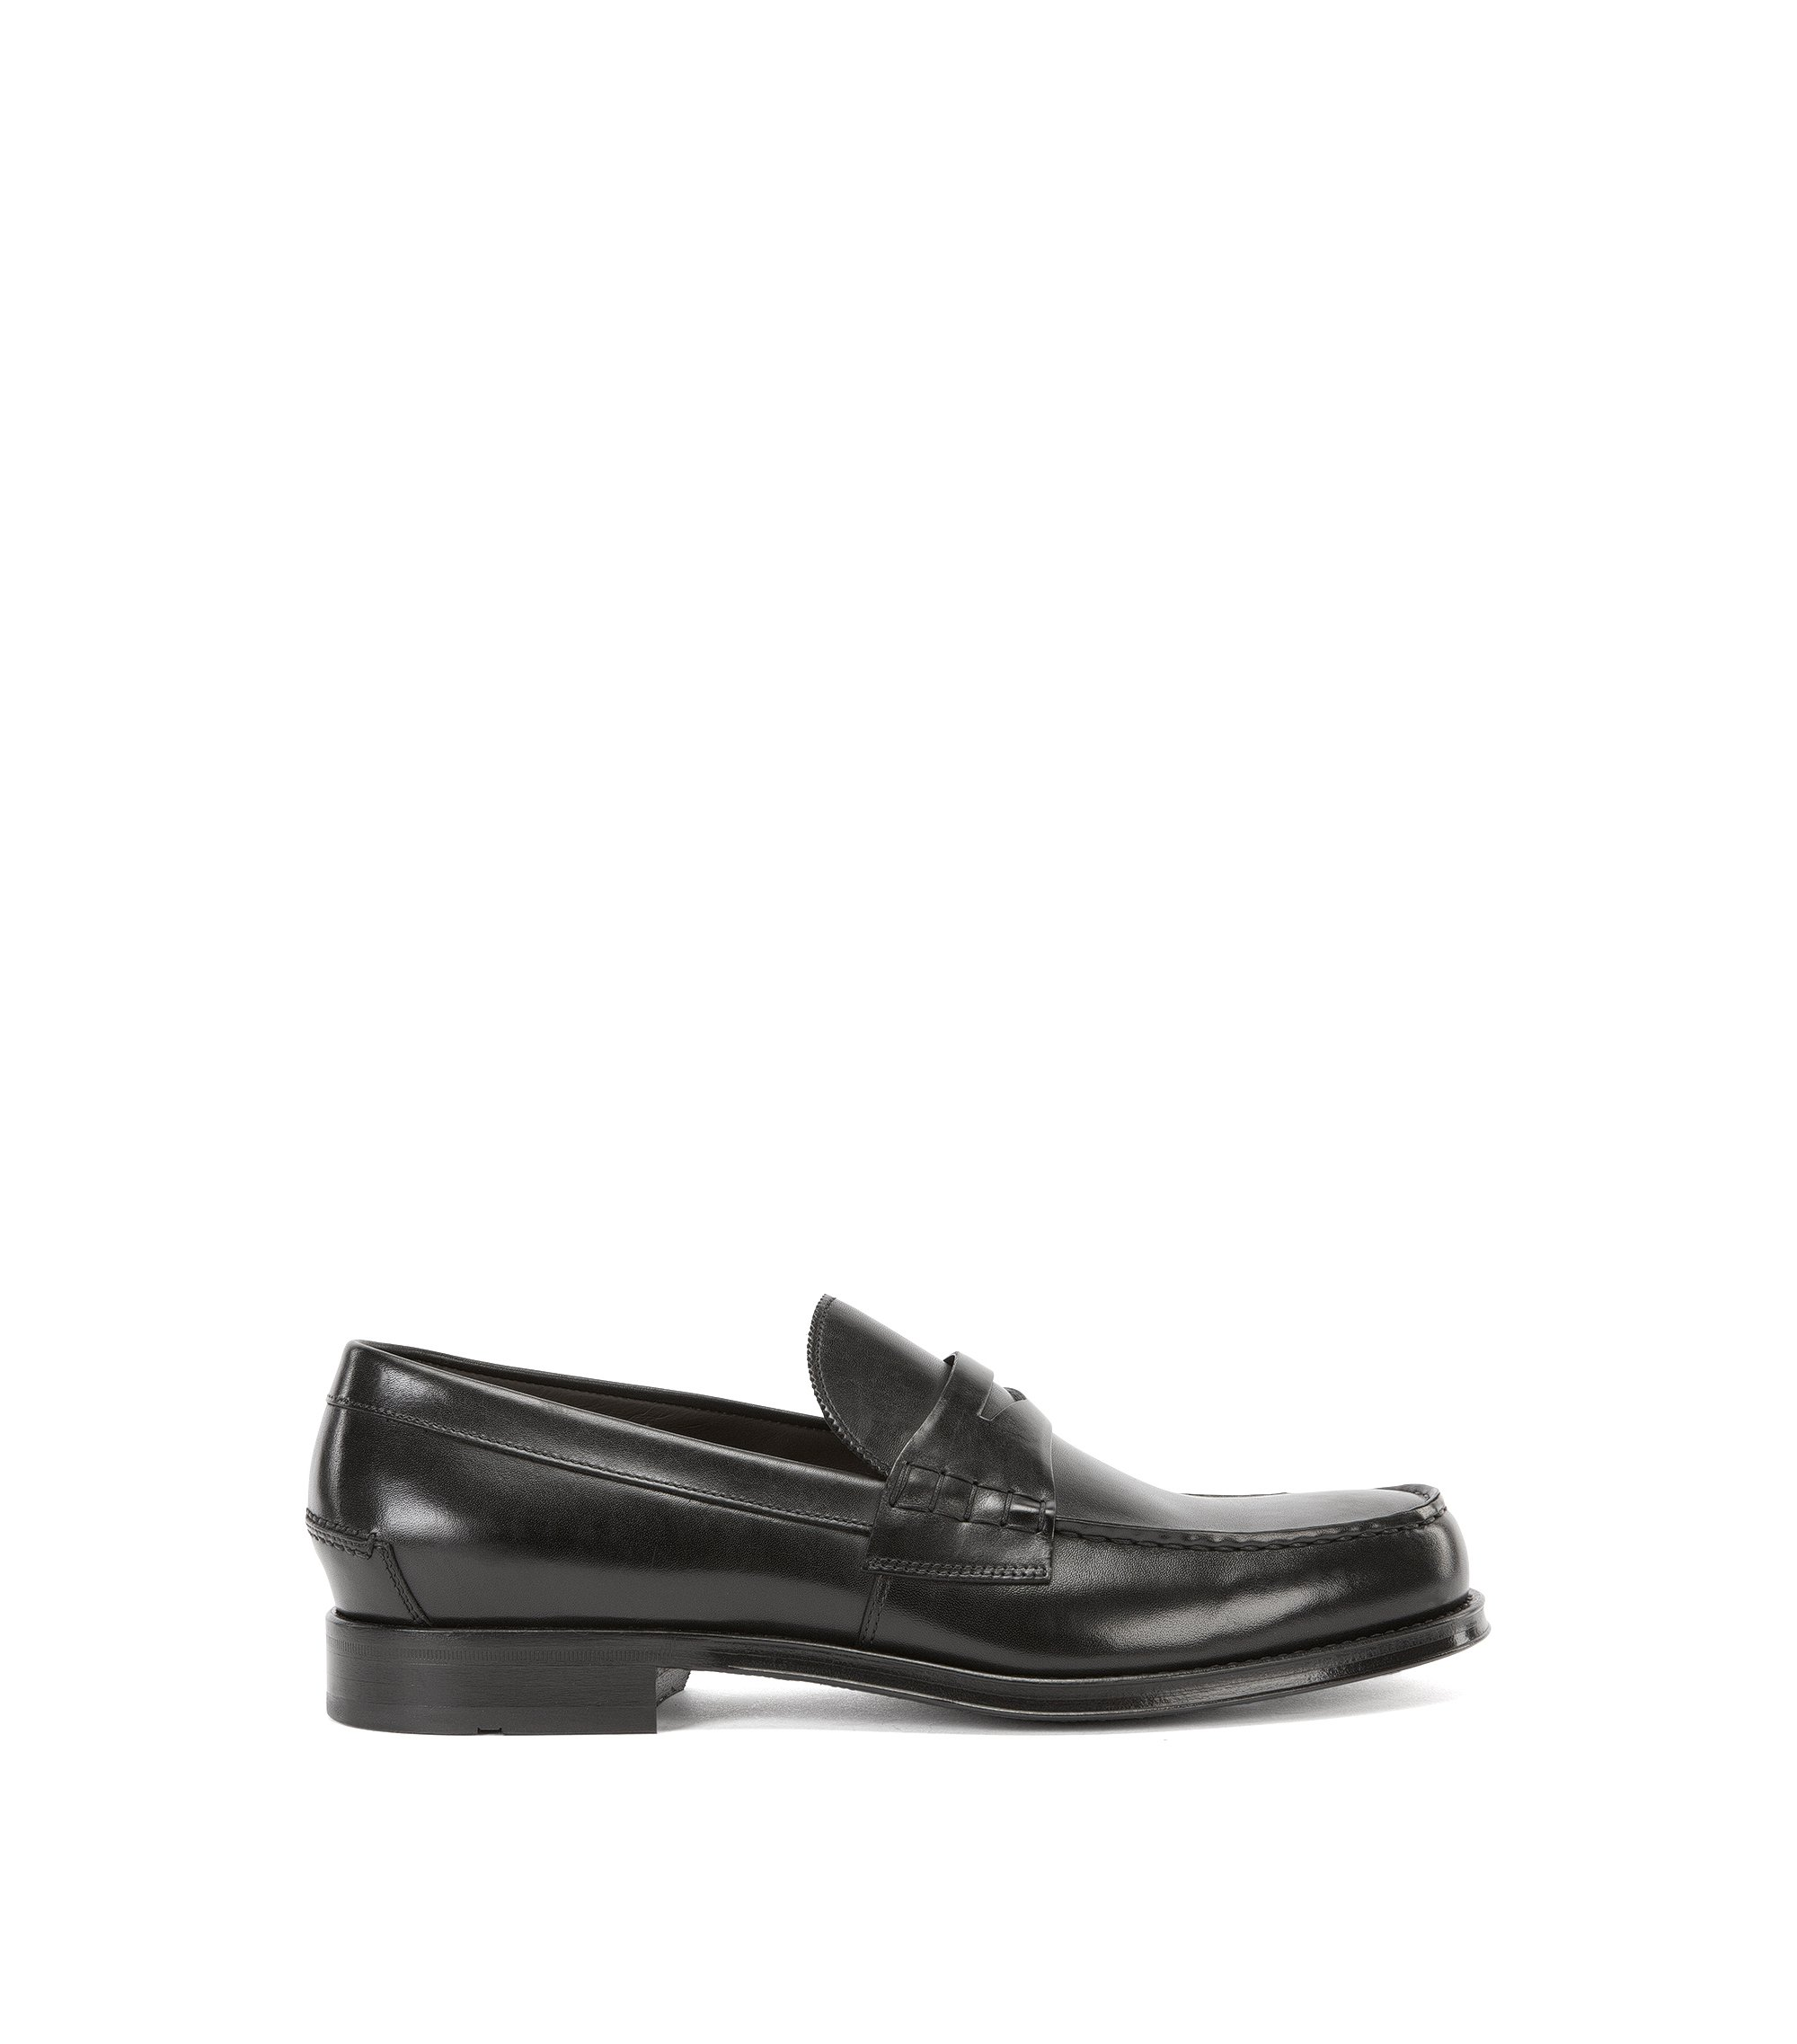 Leather loafers with moccasin detail, Black